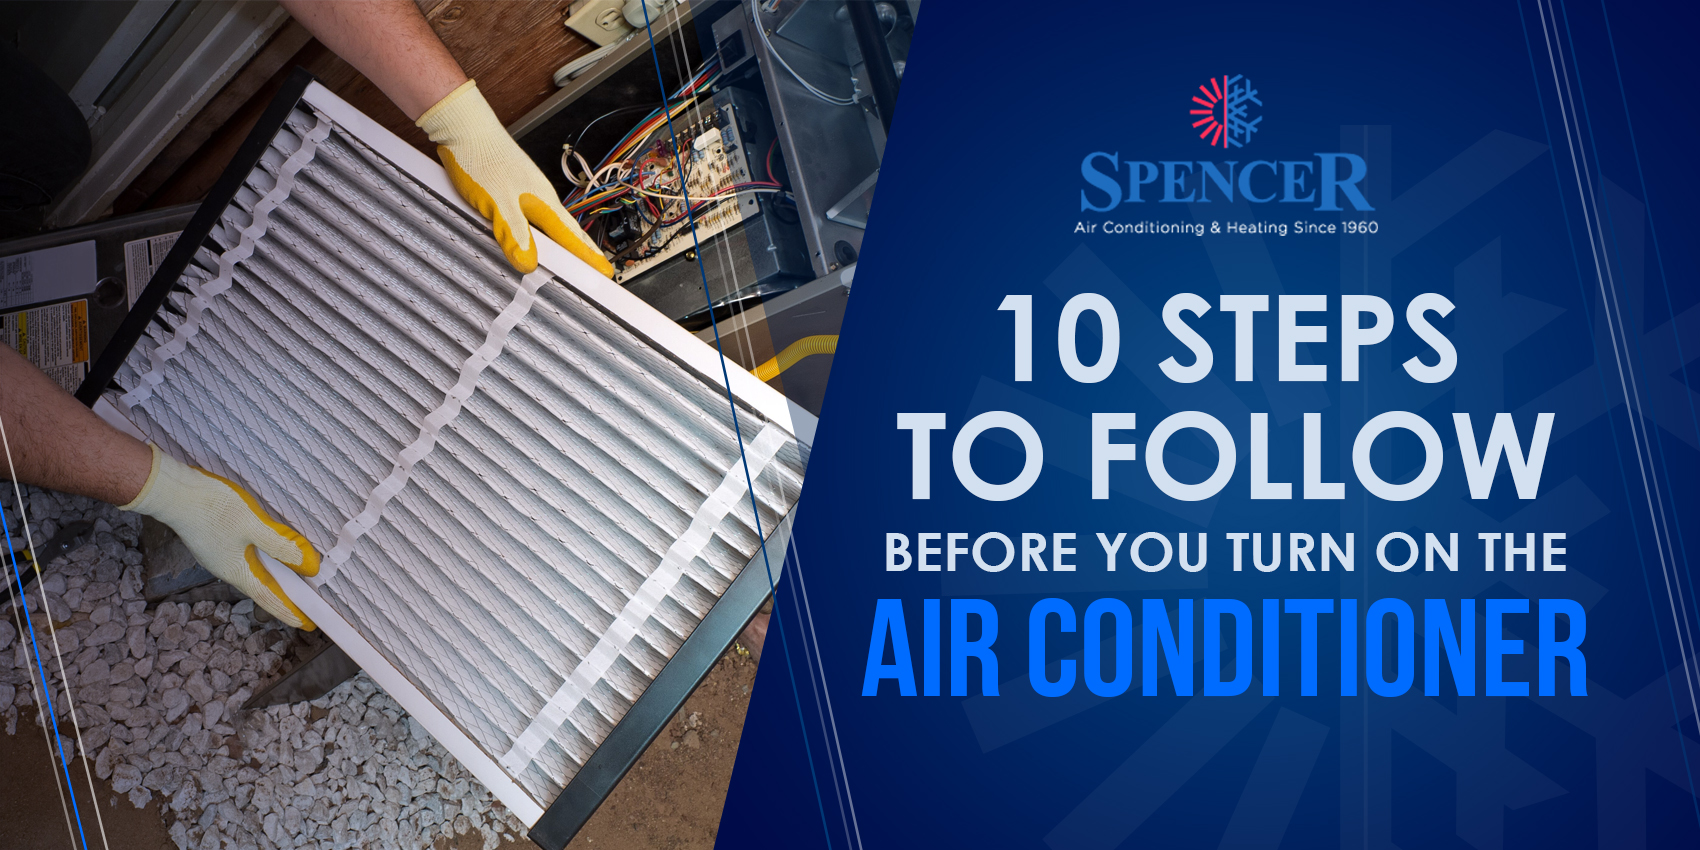 10 Steps to Follow Before You Turn on the Air Conditioner